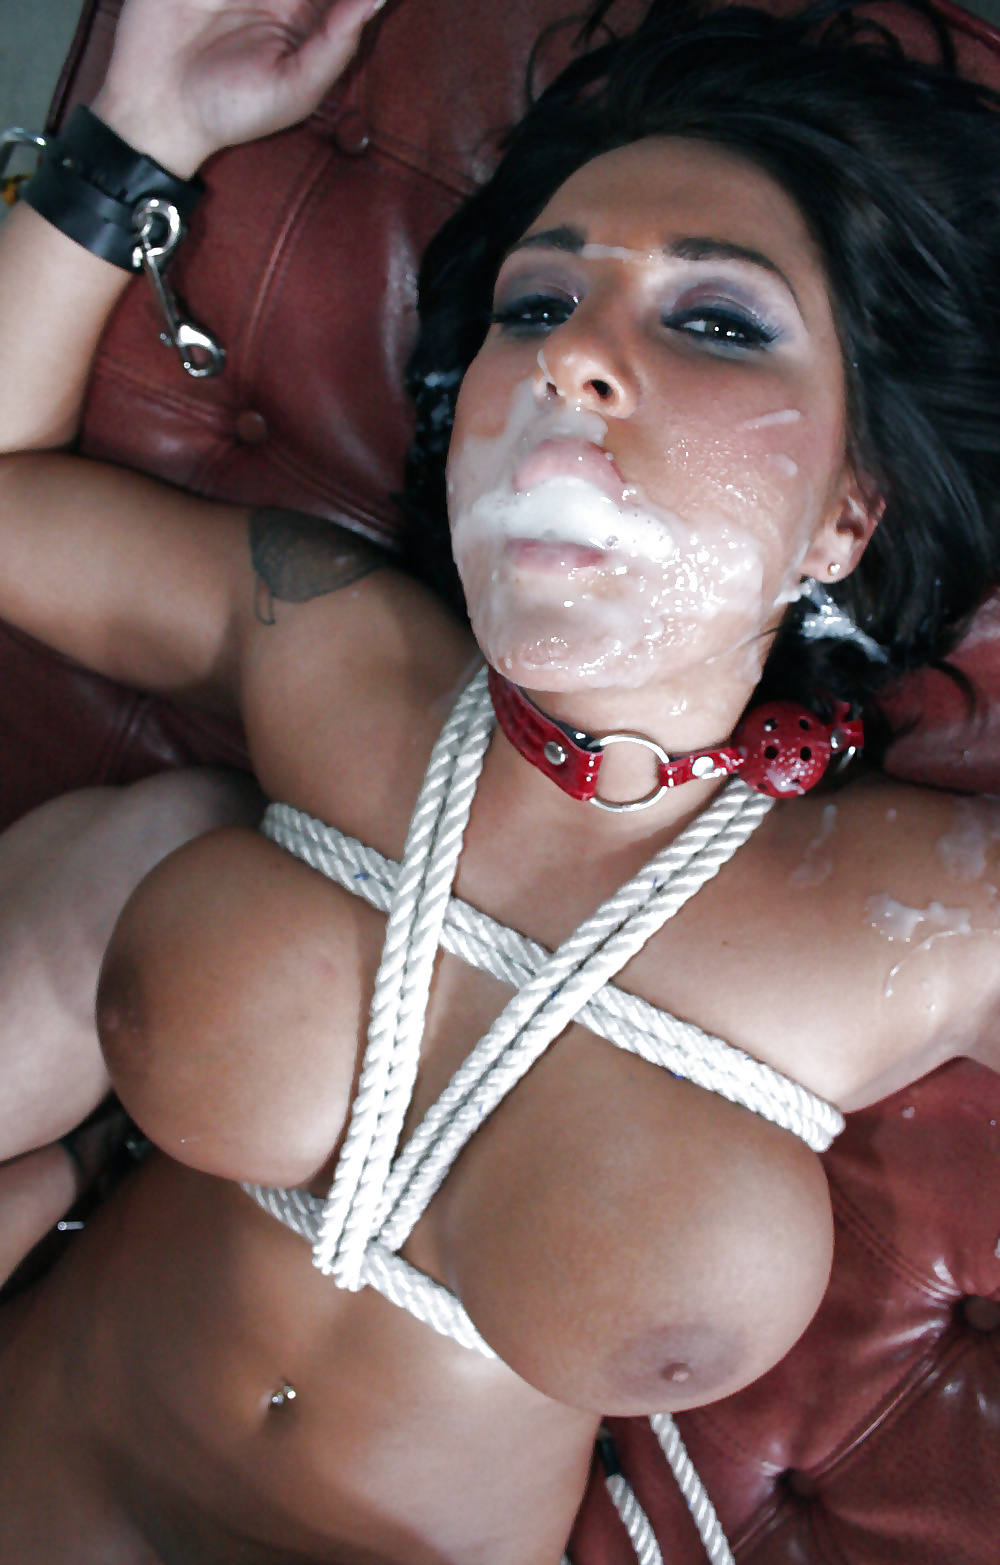 Submission Sub Cum Ds Bdsm Drool Drooling Gagged Cum In Face Violentlyandpassionate